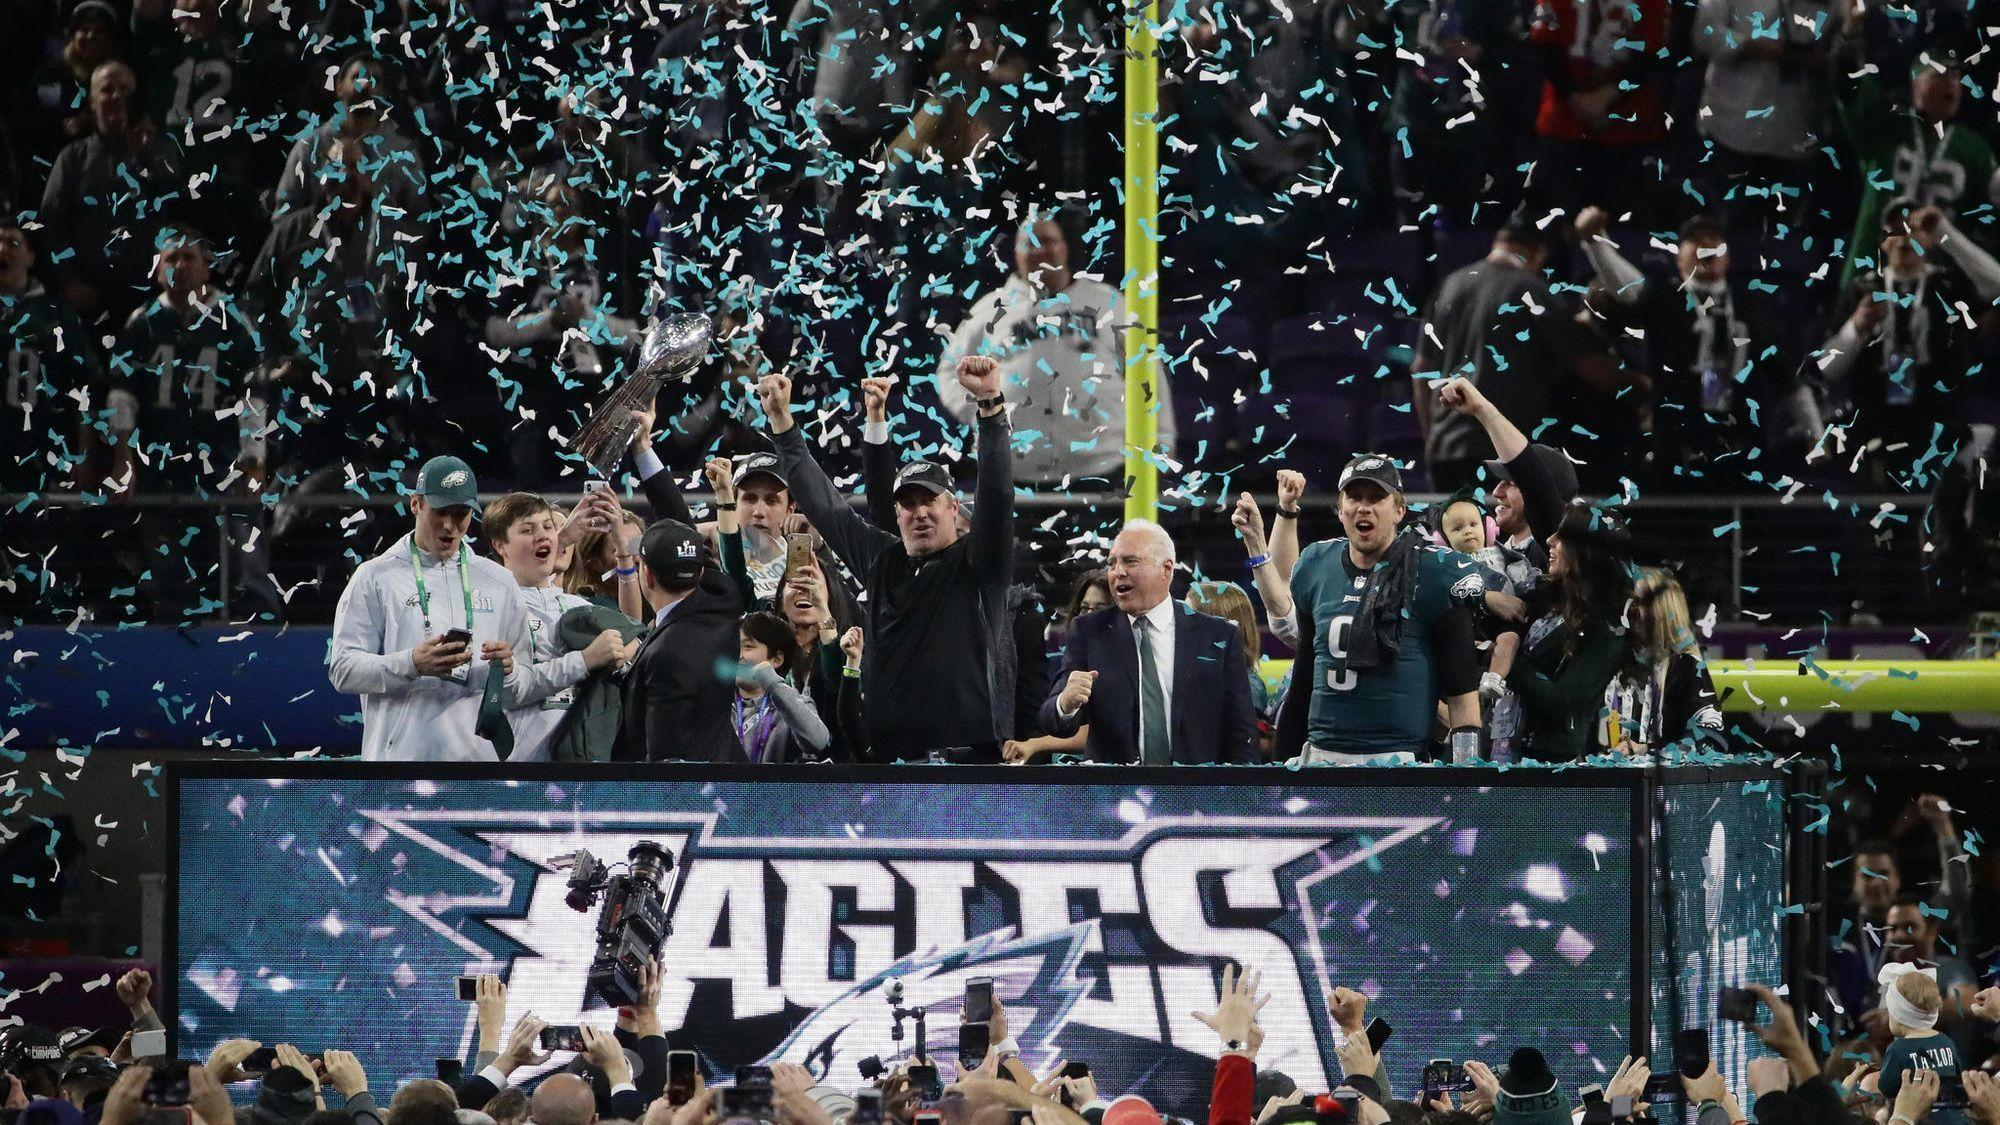 Nfl Awards The Super Bowl To Arizona In 2023 And New